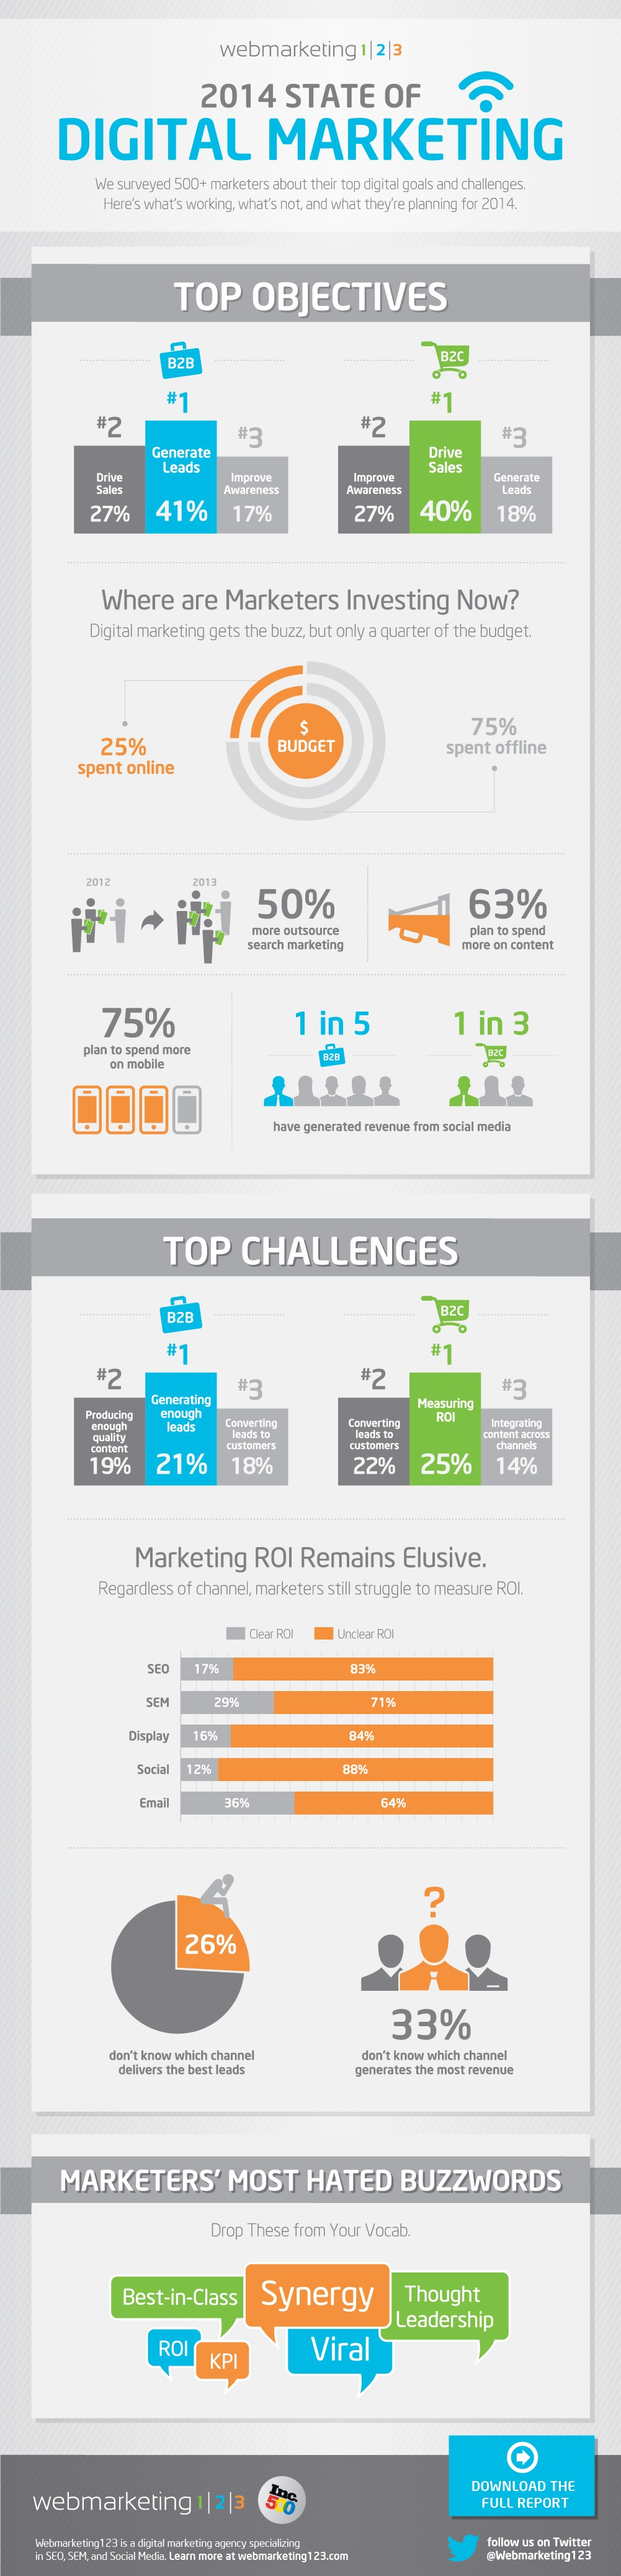 4. 2014 State of Digital Marketing